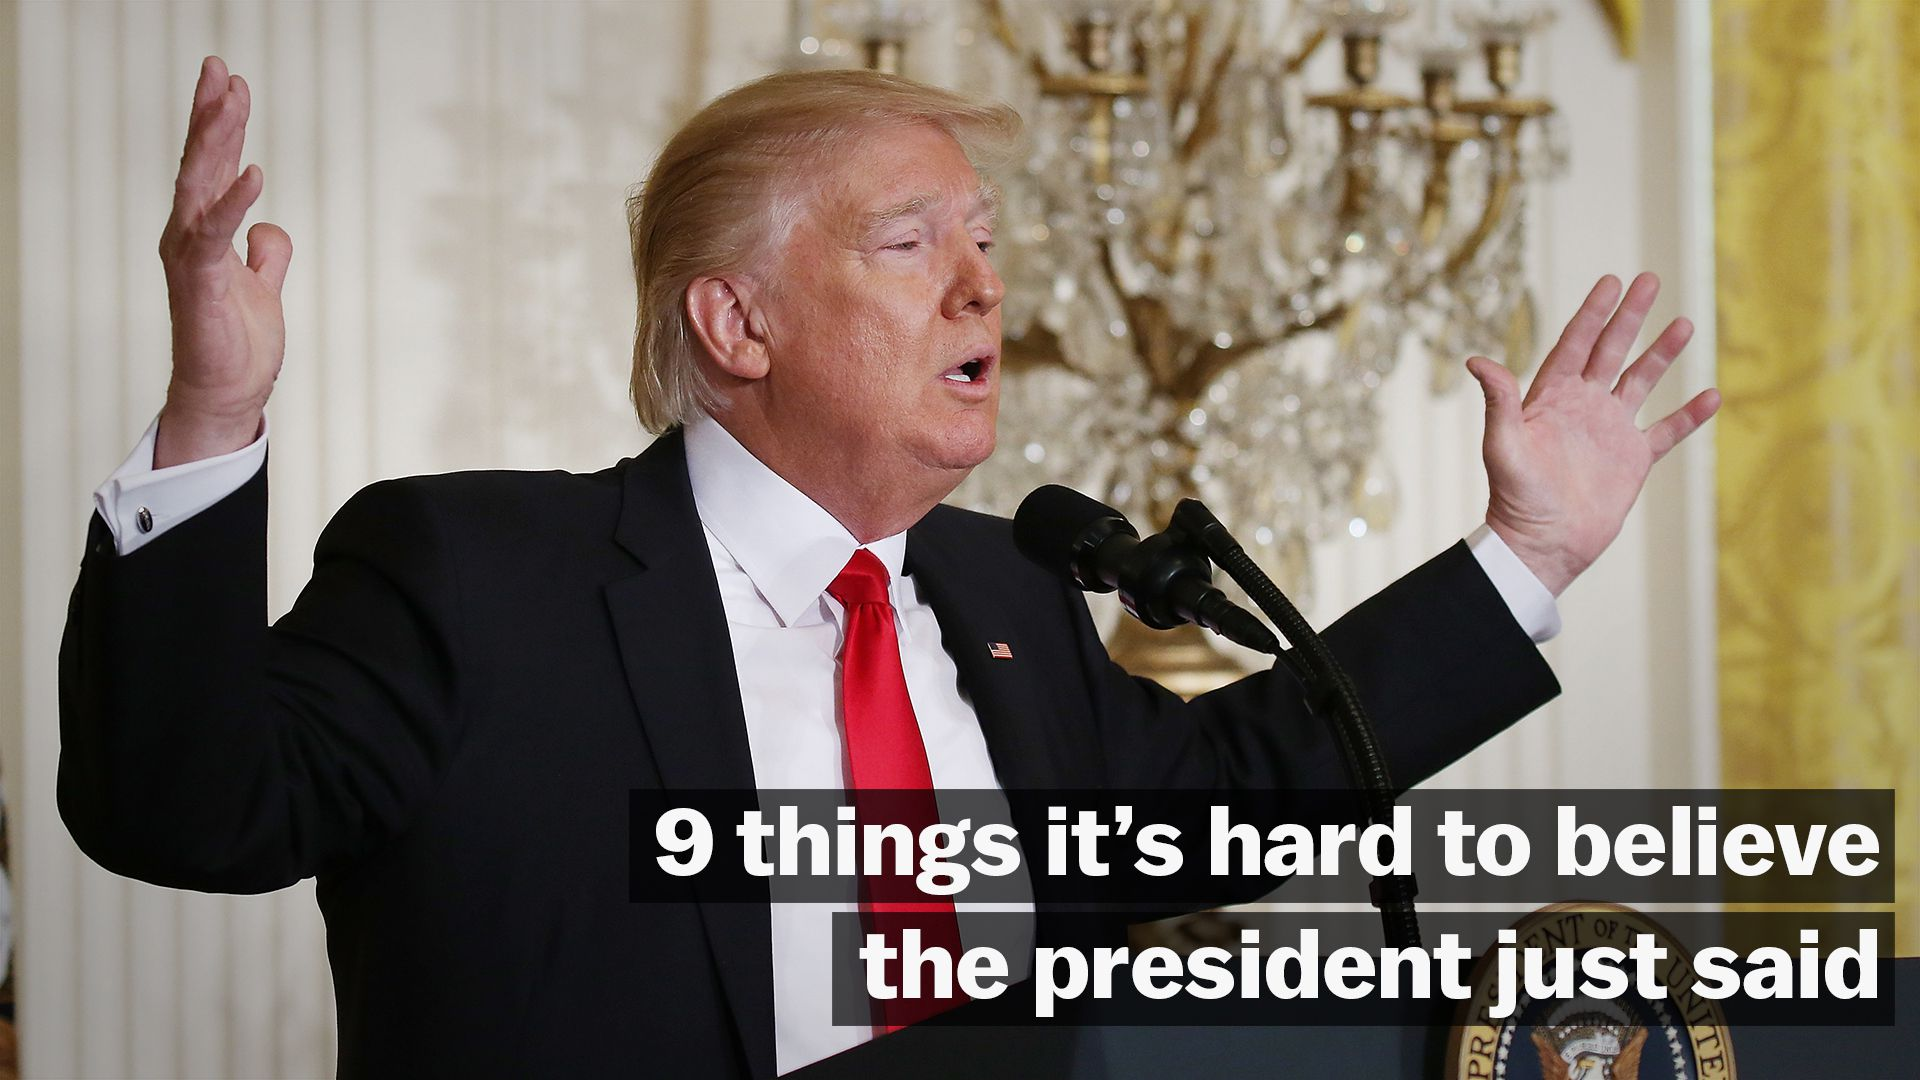 9 things it's hard to believe the president of the United States actually just said